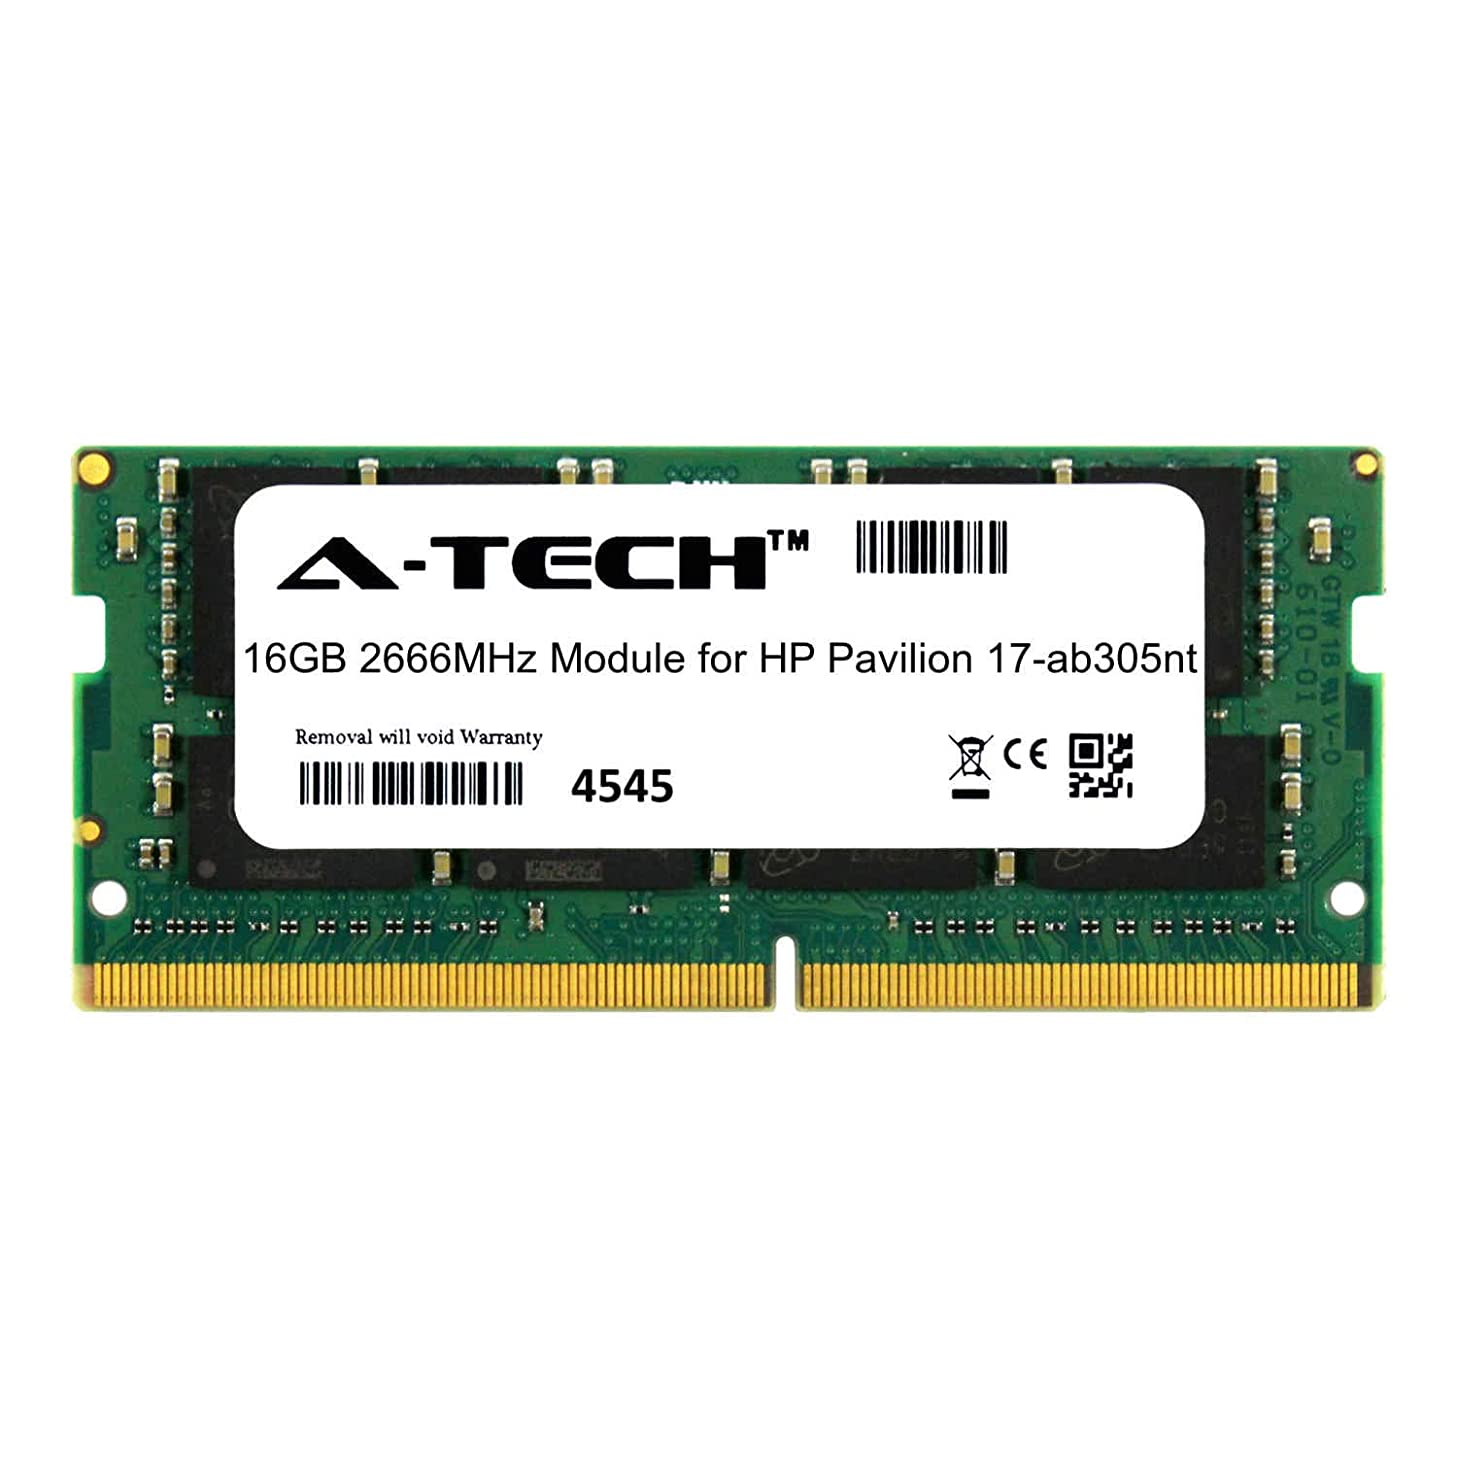 A-Tech 16GB Module for HP Pavilion 17-ab305nt Laptop & Notebook Compatible DDR4 2666Mhz Memory Ram (ATMS310509A25832X1)